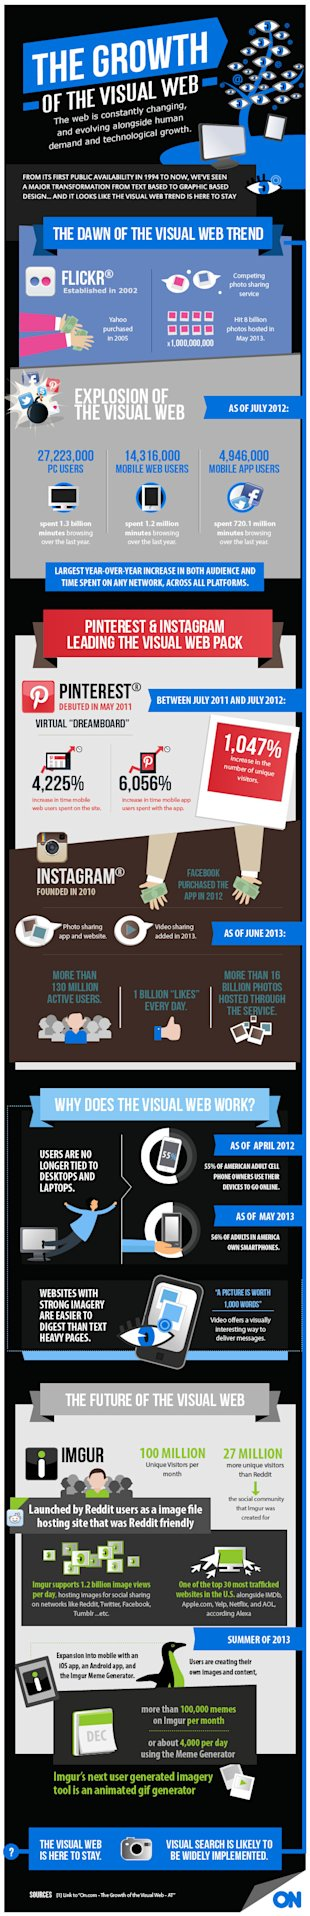 Growth of the Visual Web, Led by Pinterest & Instagram image on.com growth visual web